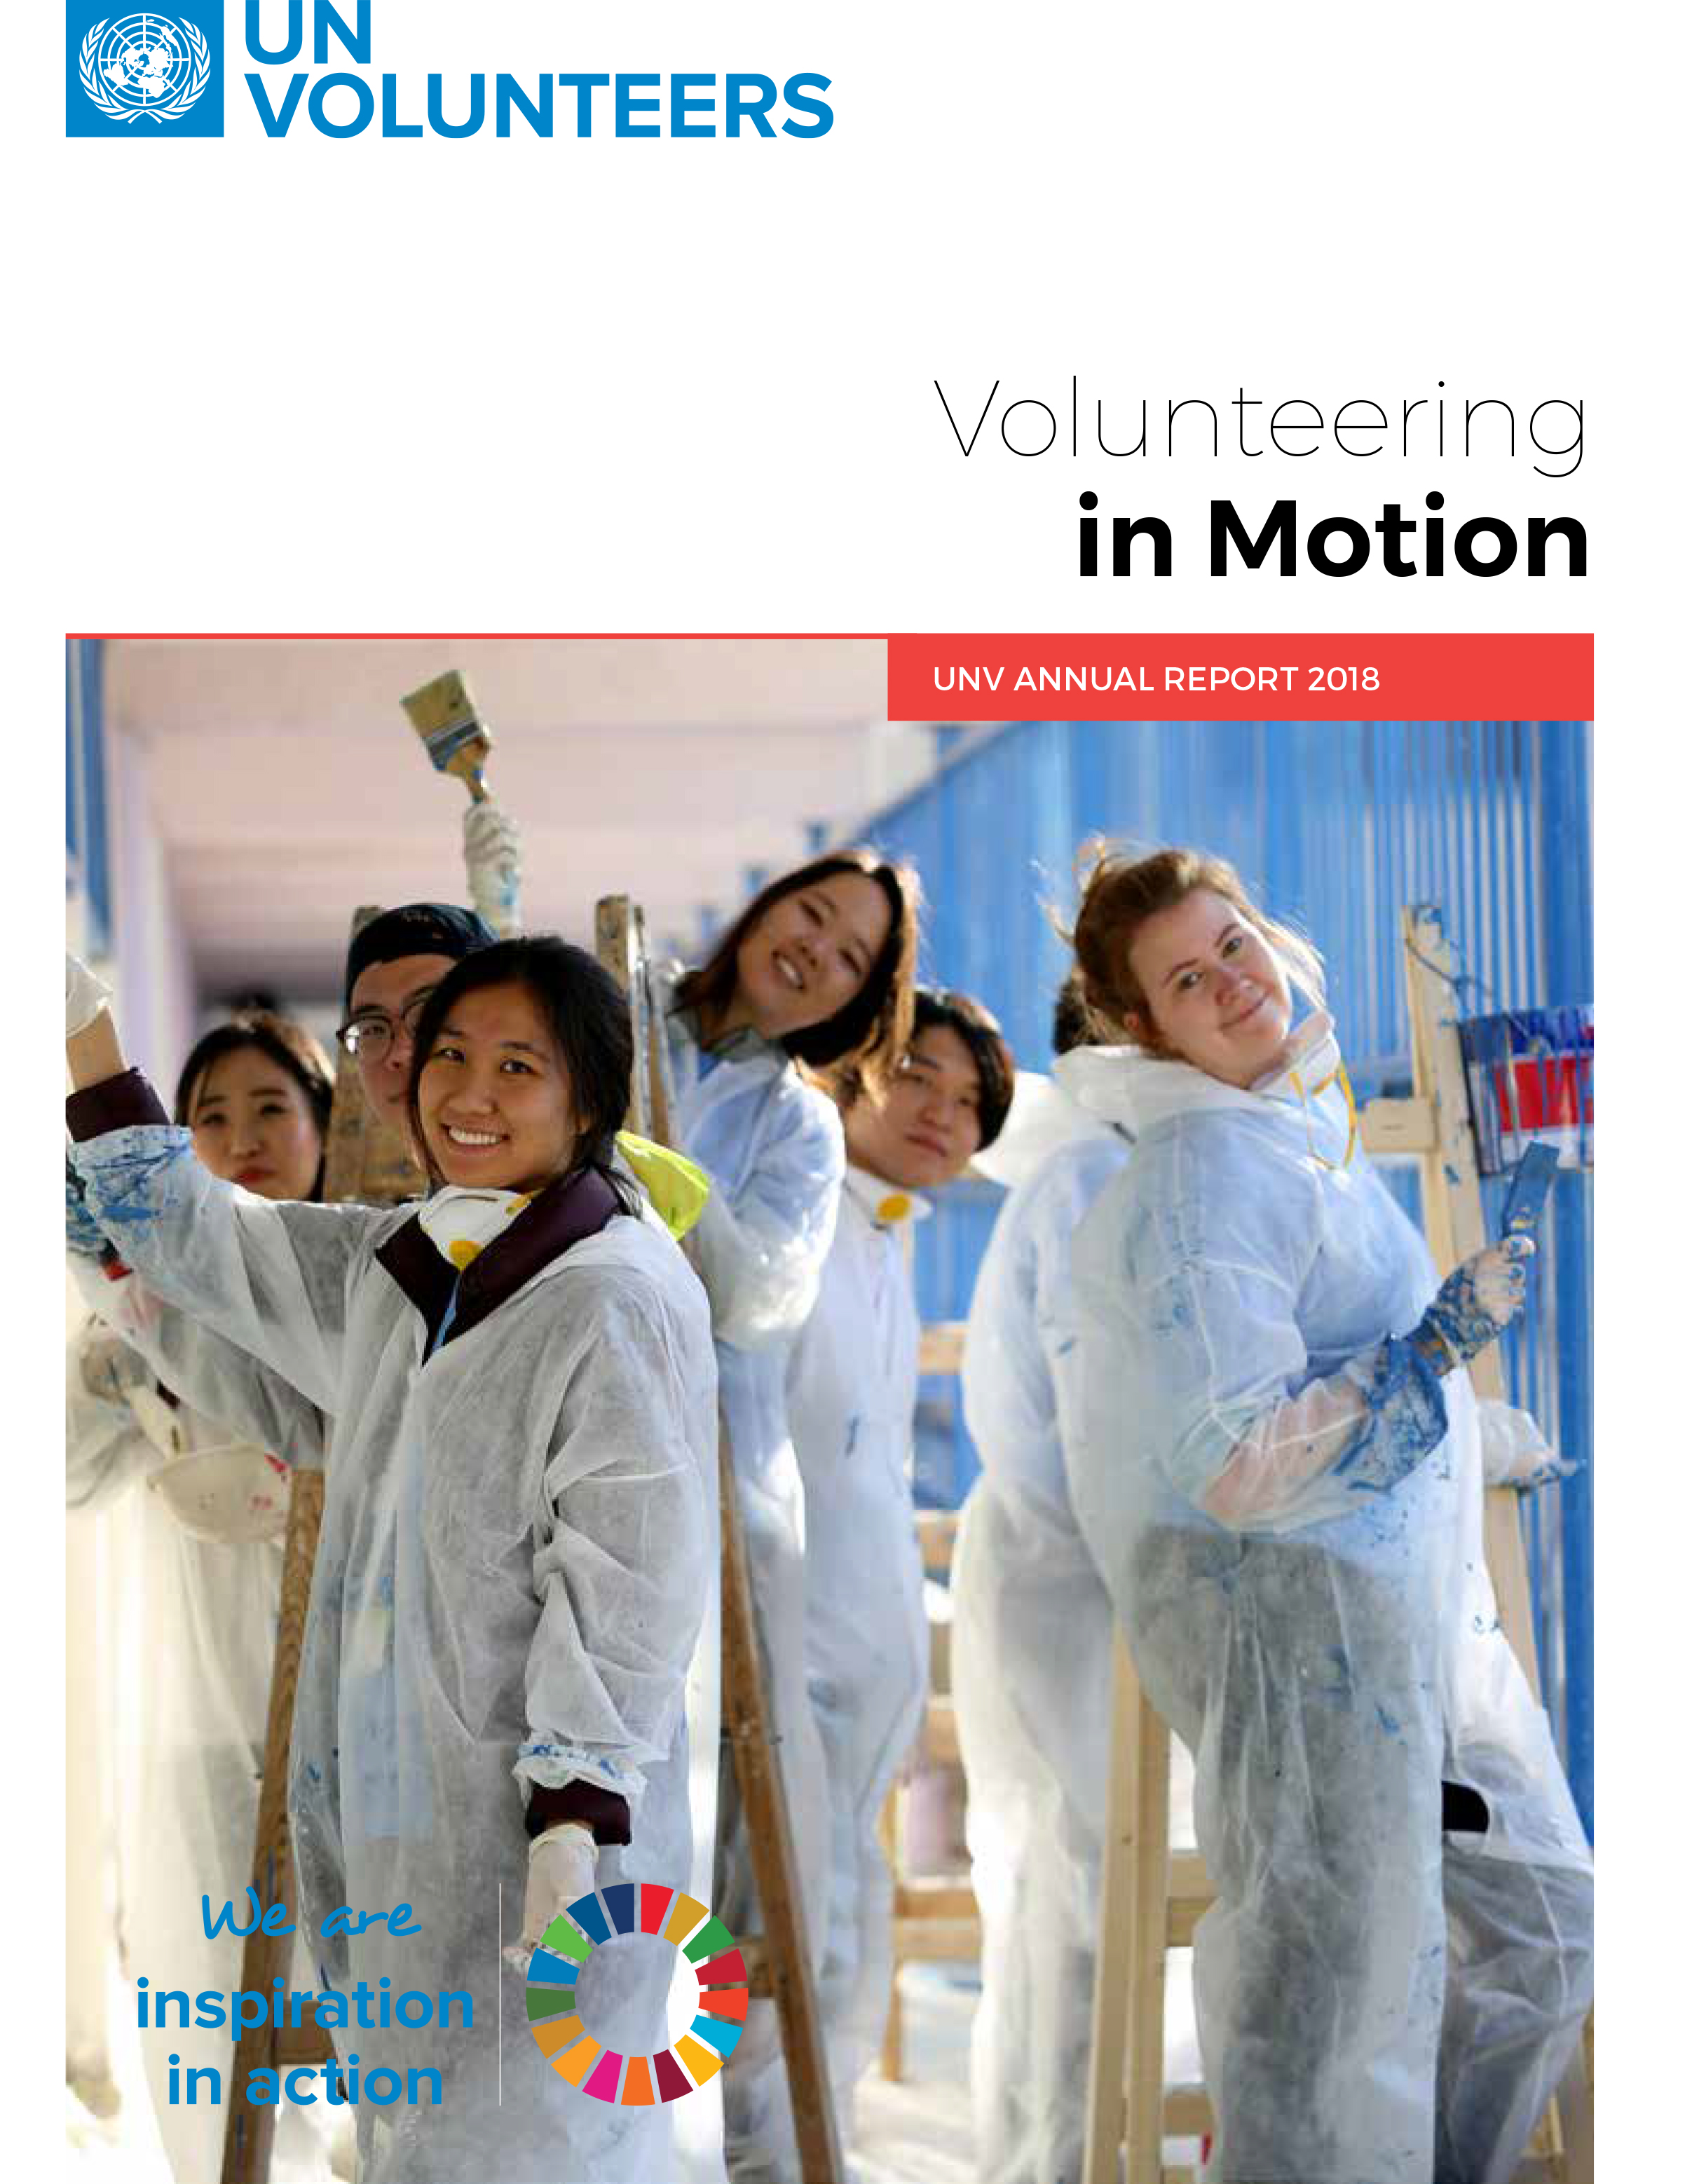 UNV Annual Report 2018: Volunteering in Motion